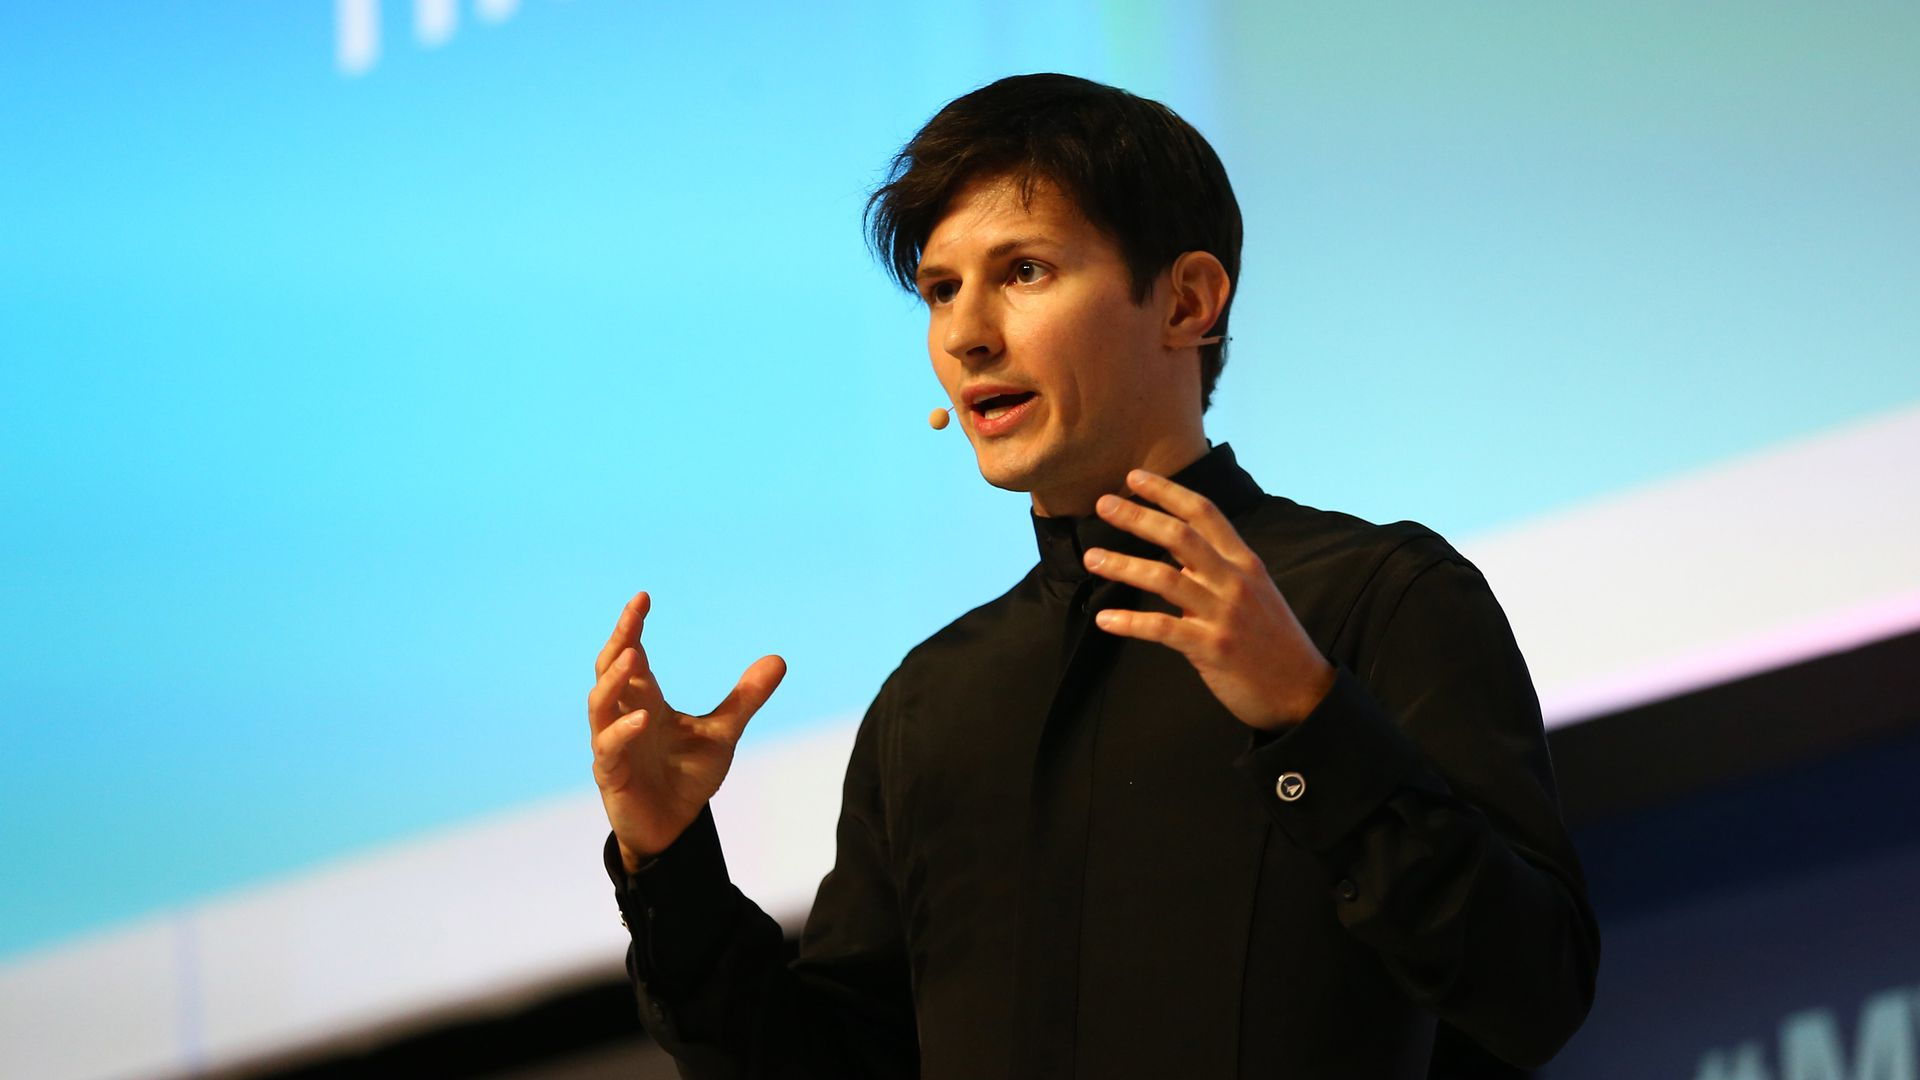 Telegram founder and CEO Pavel Durov delivers his keynote conference during day two of the Mobile World Congress at the Fira Gran Via complex in Barcelona, Spain on February 23, 2016.